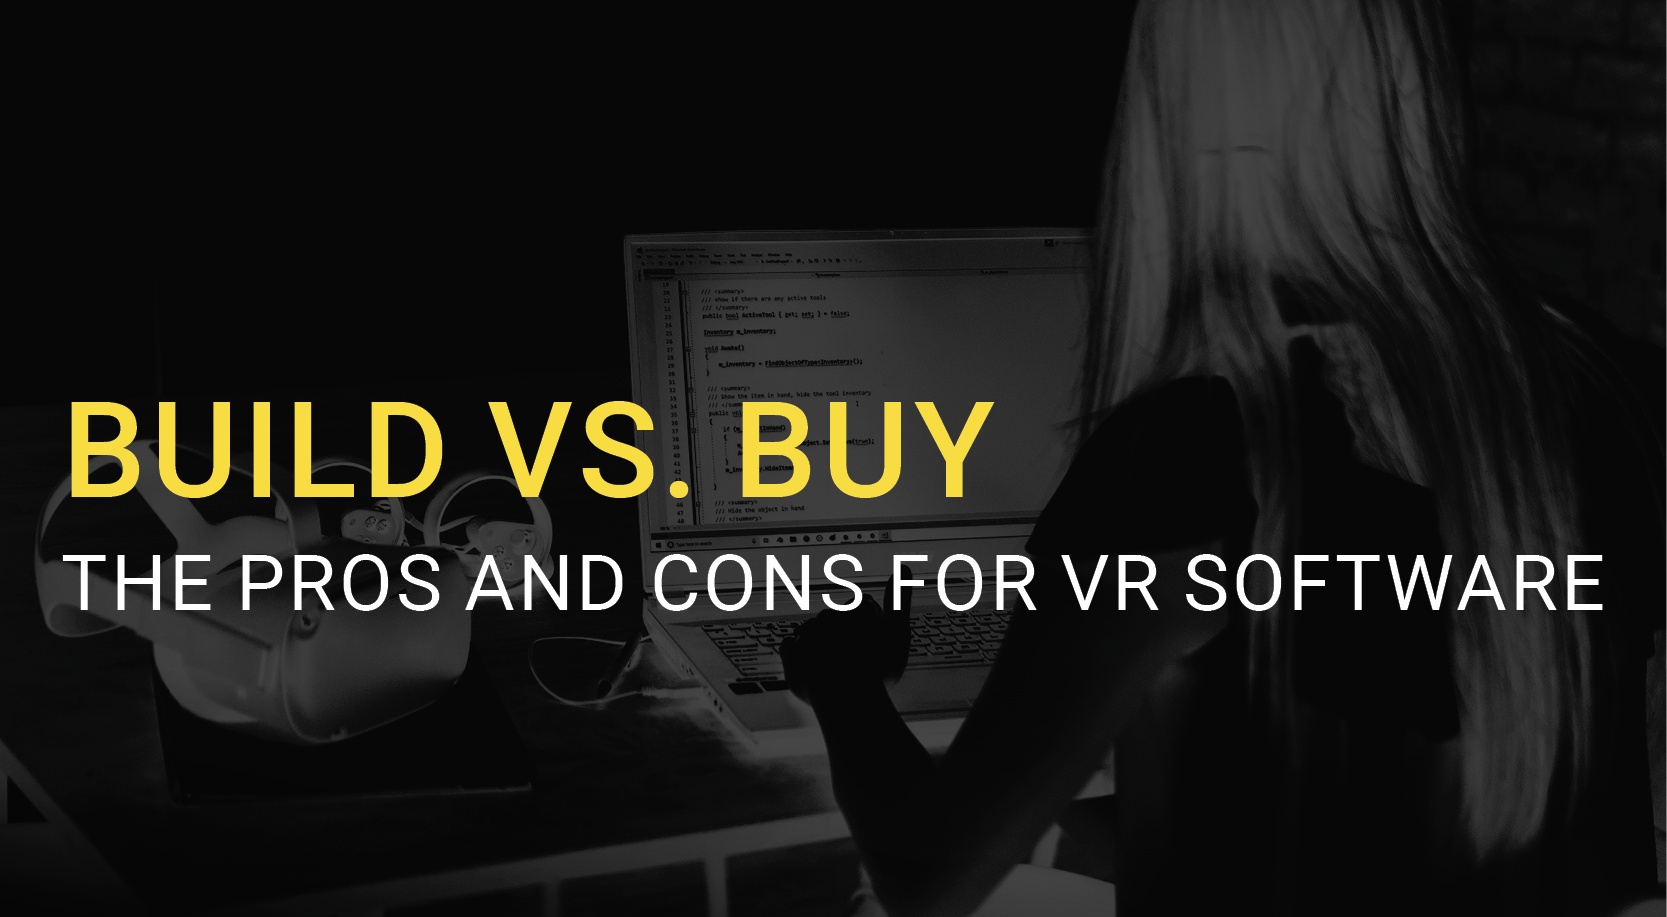 Build vs. Buy blog header